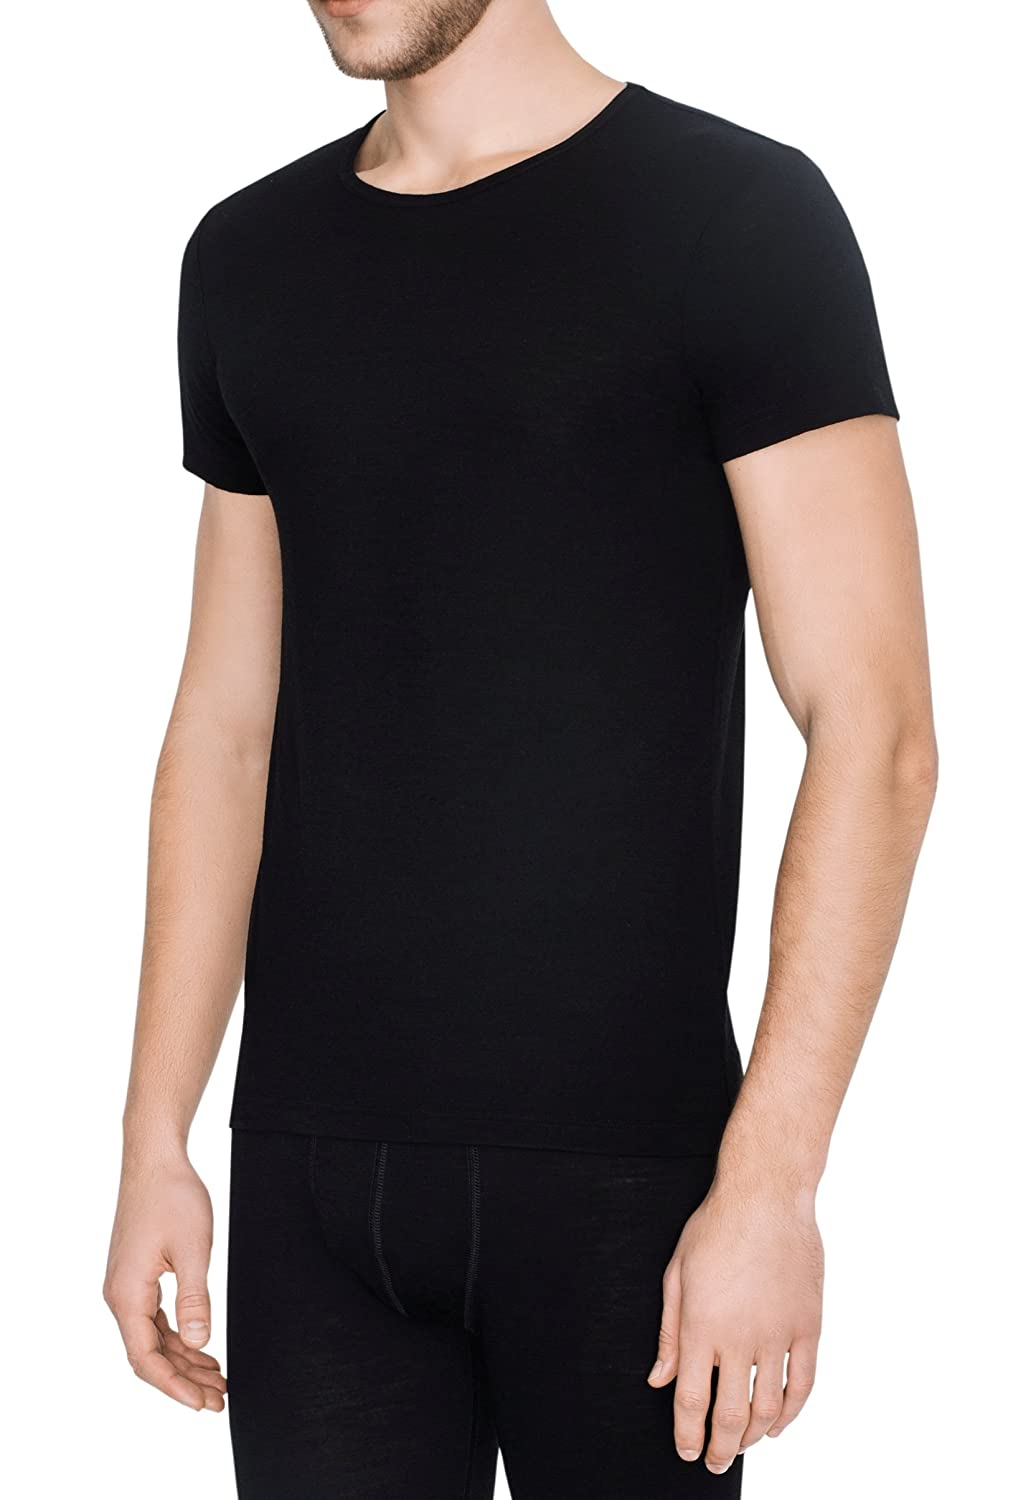 ABOUT 100% TEC Merino Wool Ultra Soft Mens undershirt Underwear short sleeves Crew Neck made in EU, Extra Quality